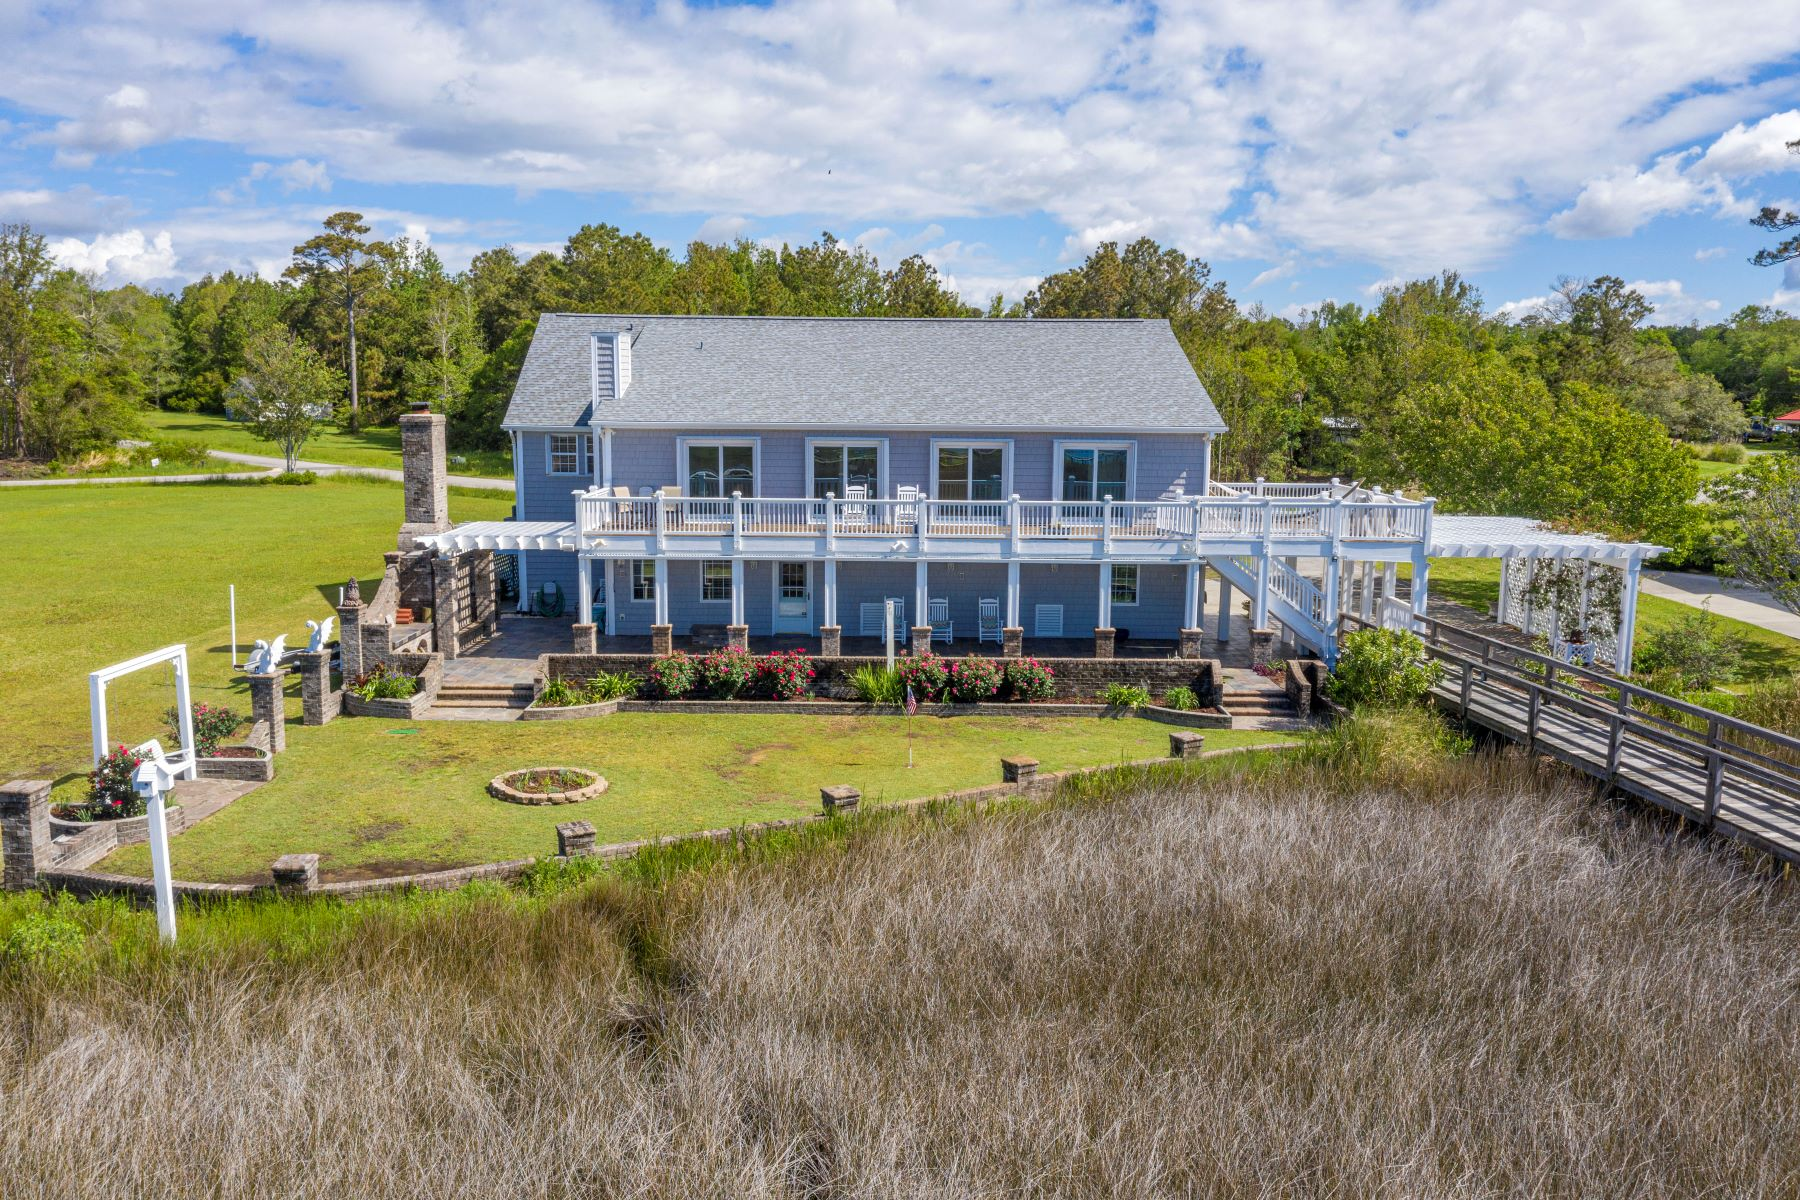 Single Family Homes for Active at Entertainer's and Gardener's Dream Home 205 Topsail Watch Drive Hampstead, North Carolina 28443 United States